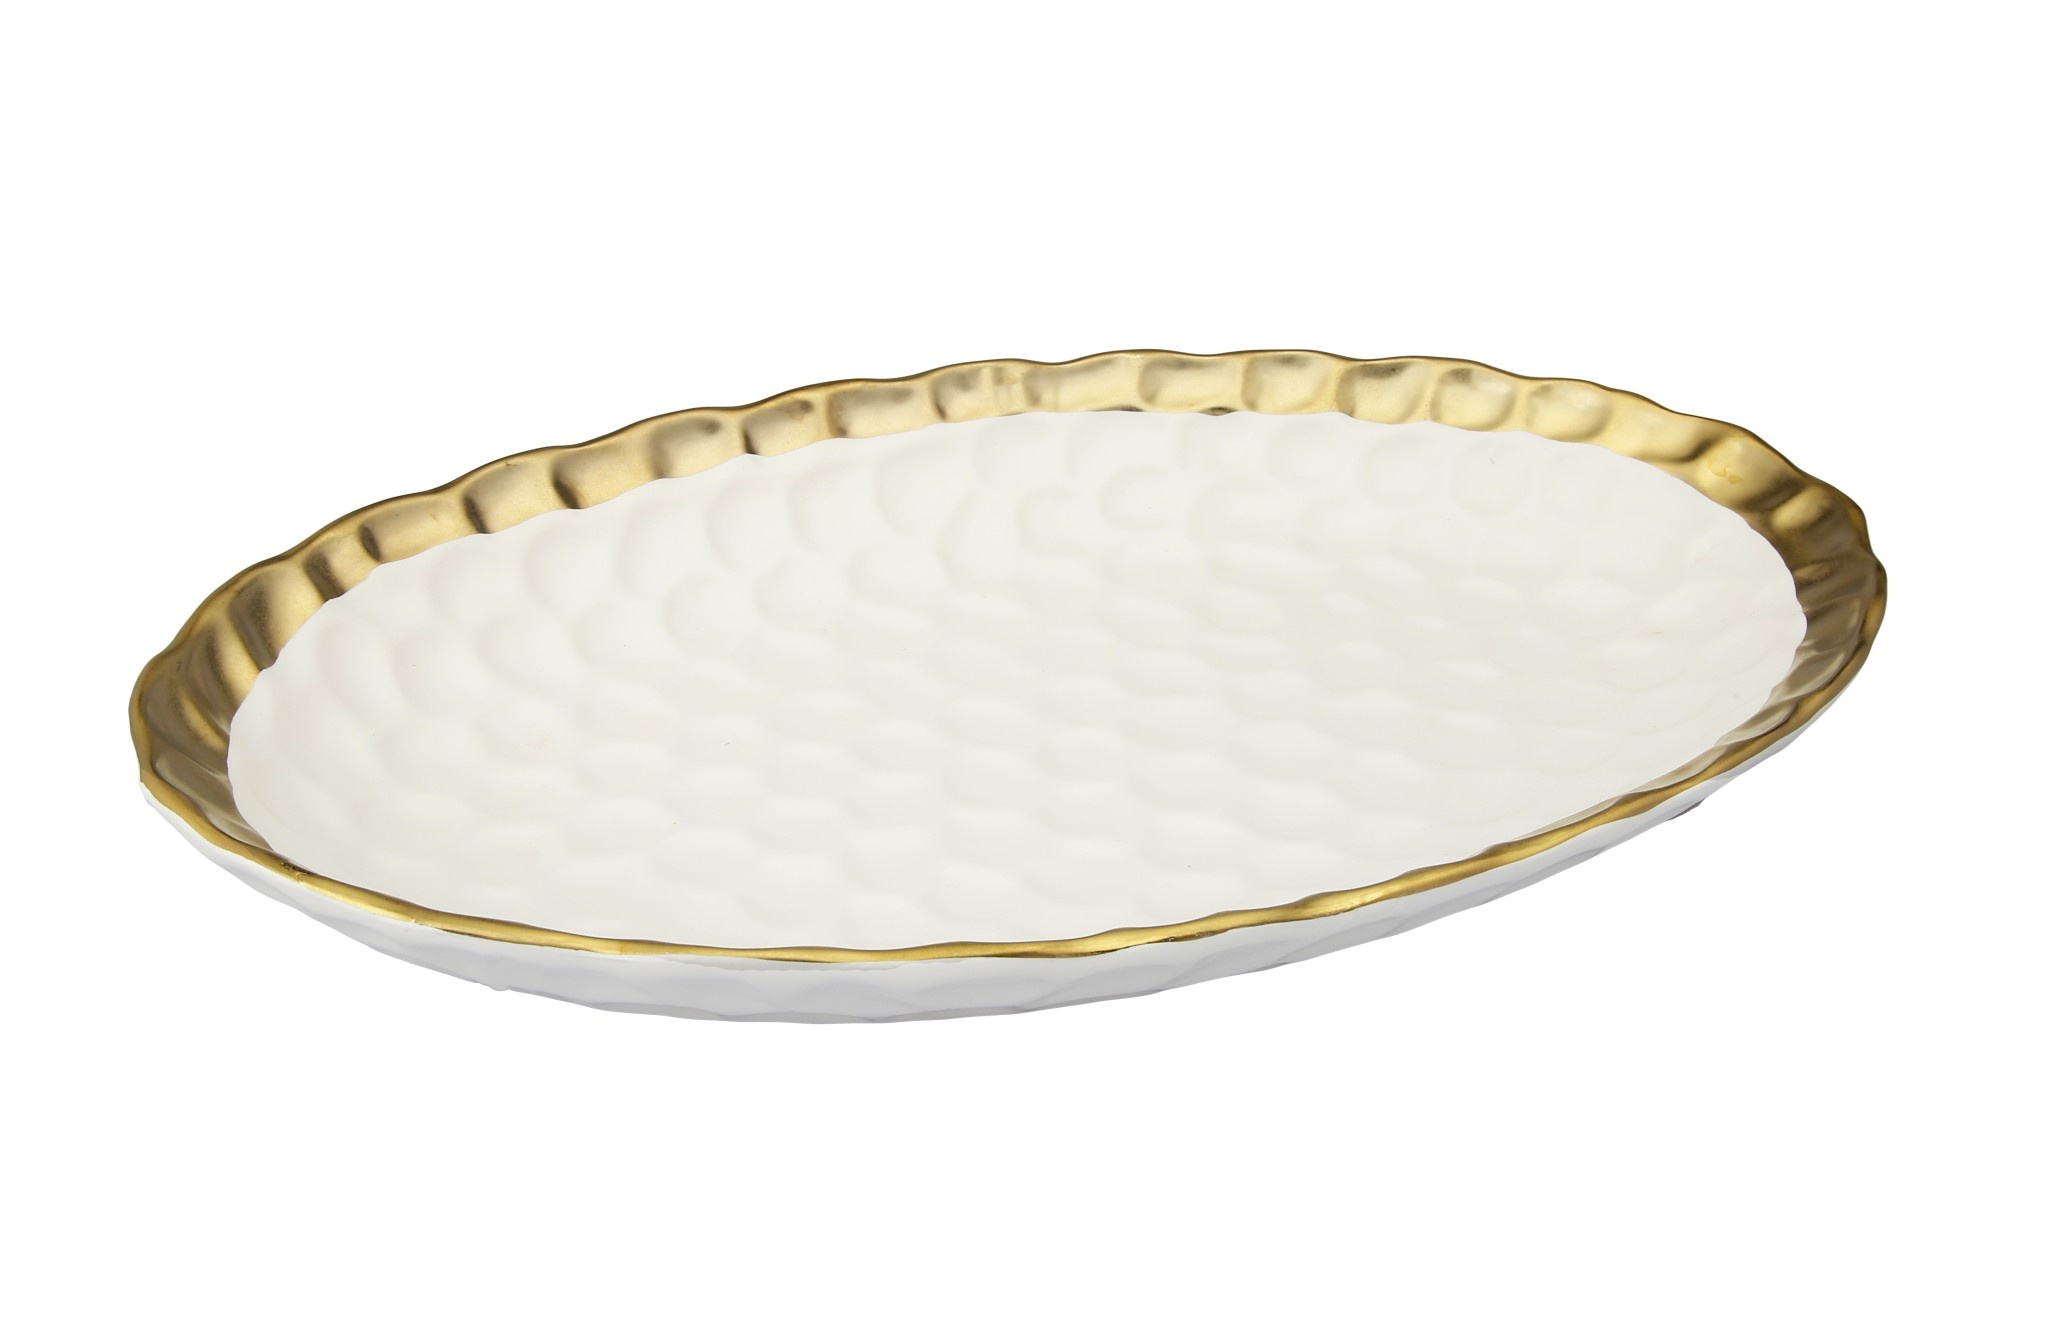 White Oval Platter with Gold Rim